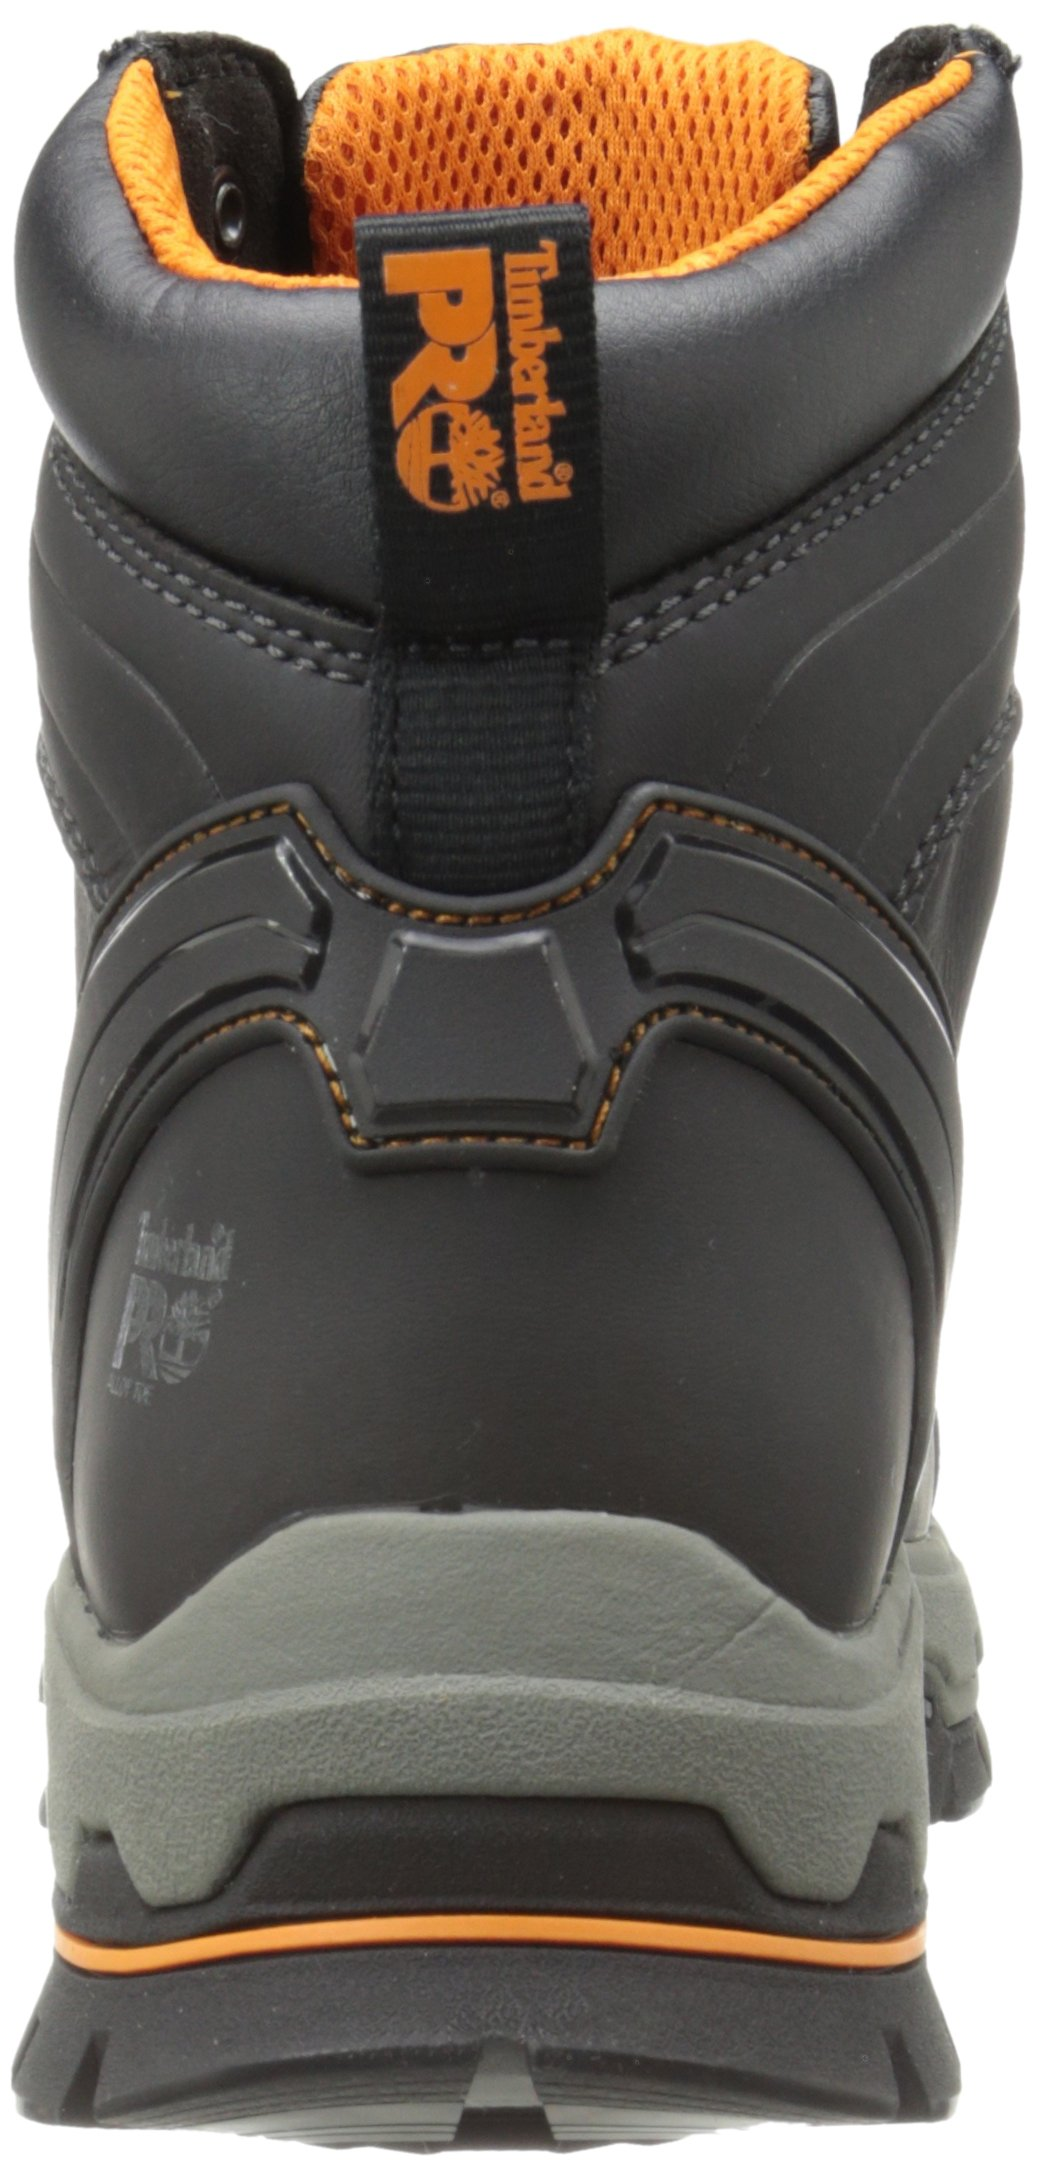 Timberland PRO Men's 6 Inch Stockdale Grip Max Alloy Toe Work and Hunt Boot, Black Microfiber, 5.5 W US by Timberland PRO (Image #2)